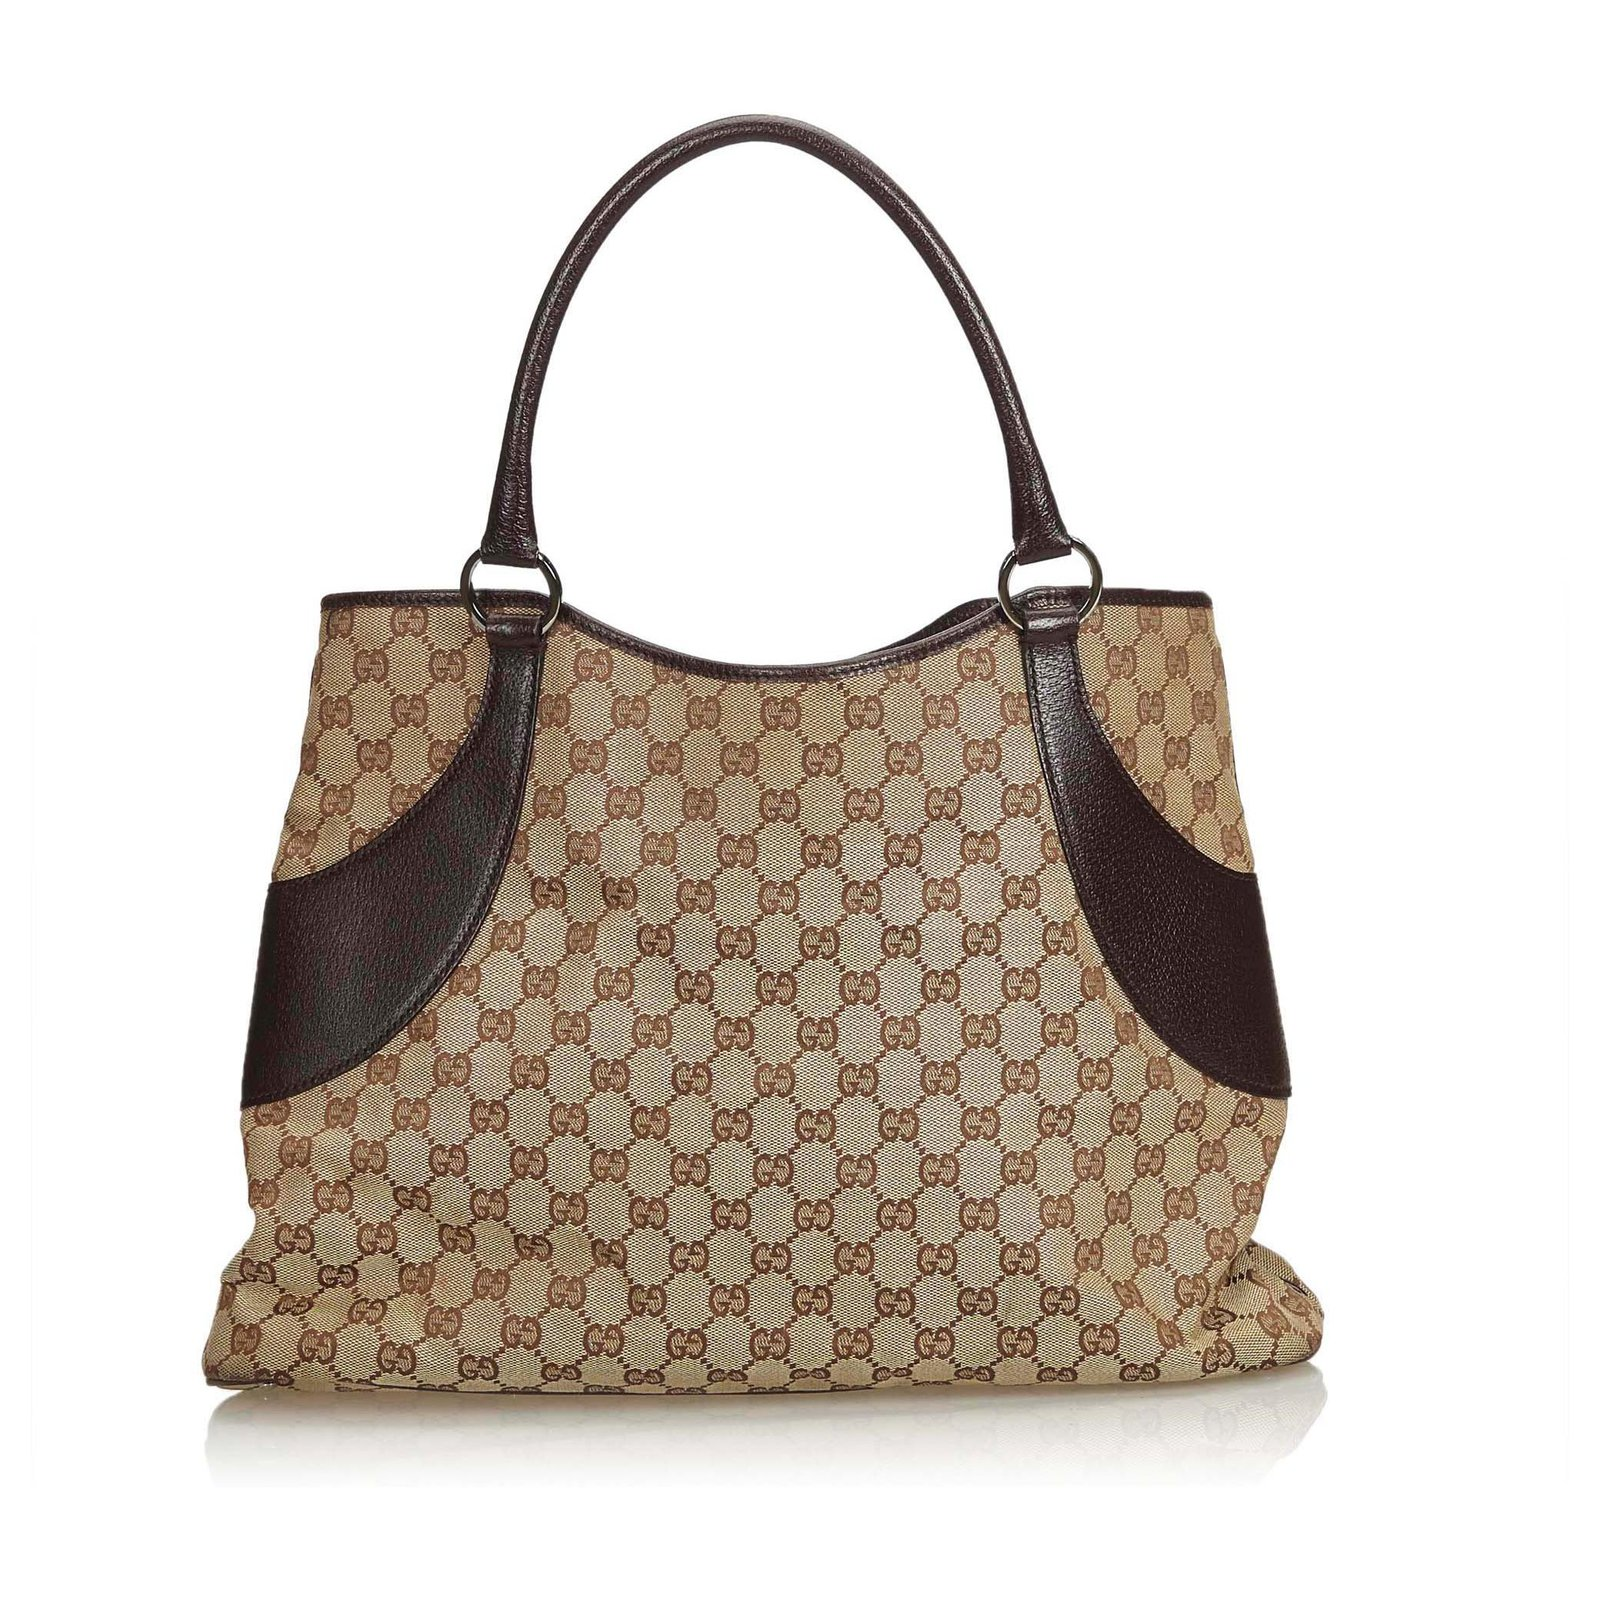 fea70c59e672 Gucci Gucci Brown GG Canvas Tote Bag Totes Leather,Other,Cloth,Cloth Brown